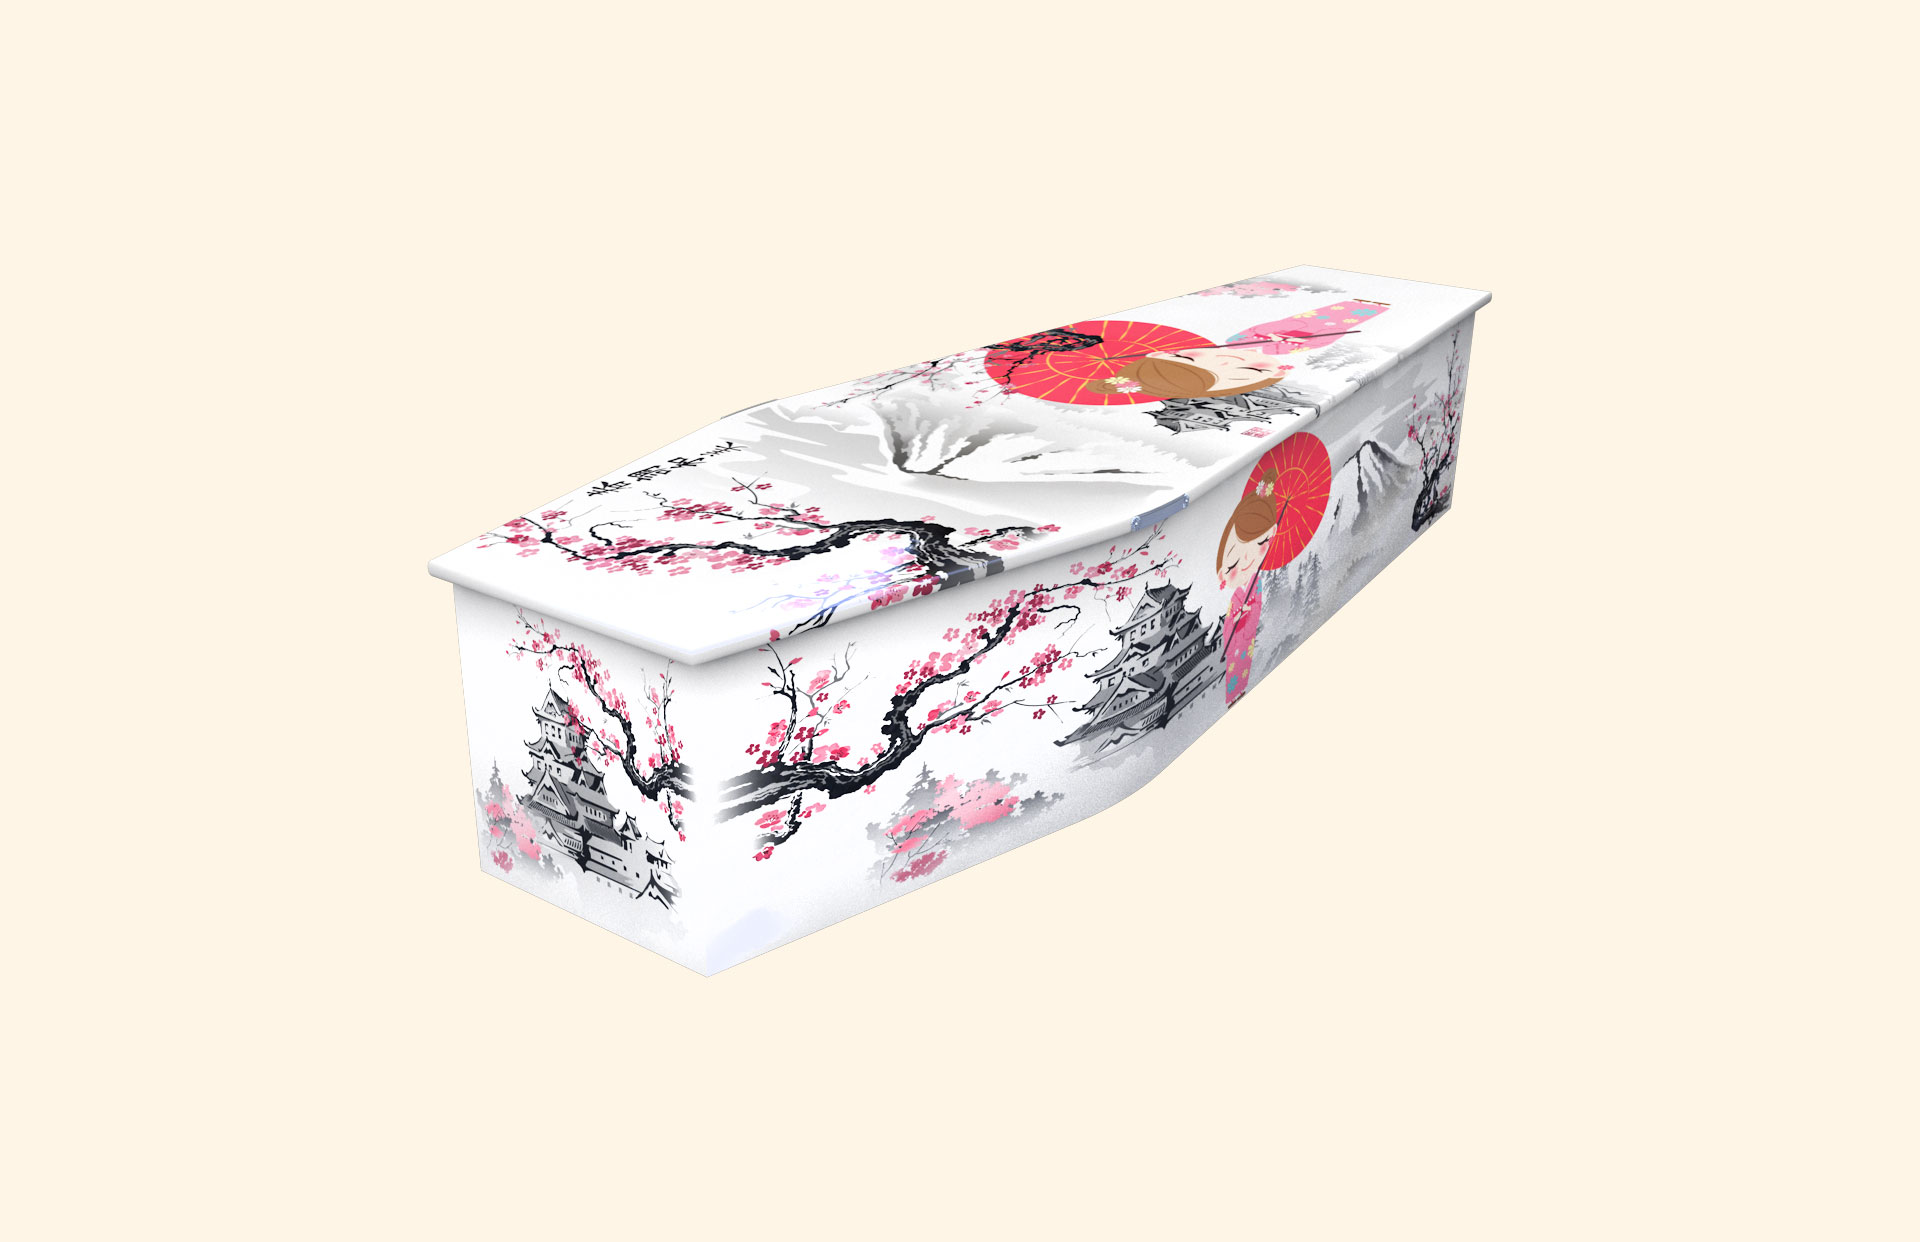 Our Little Blossom child coffin